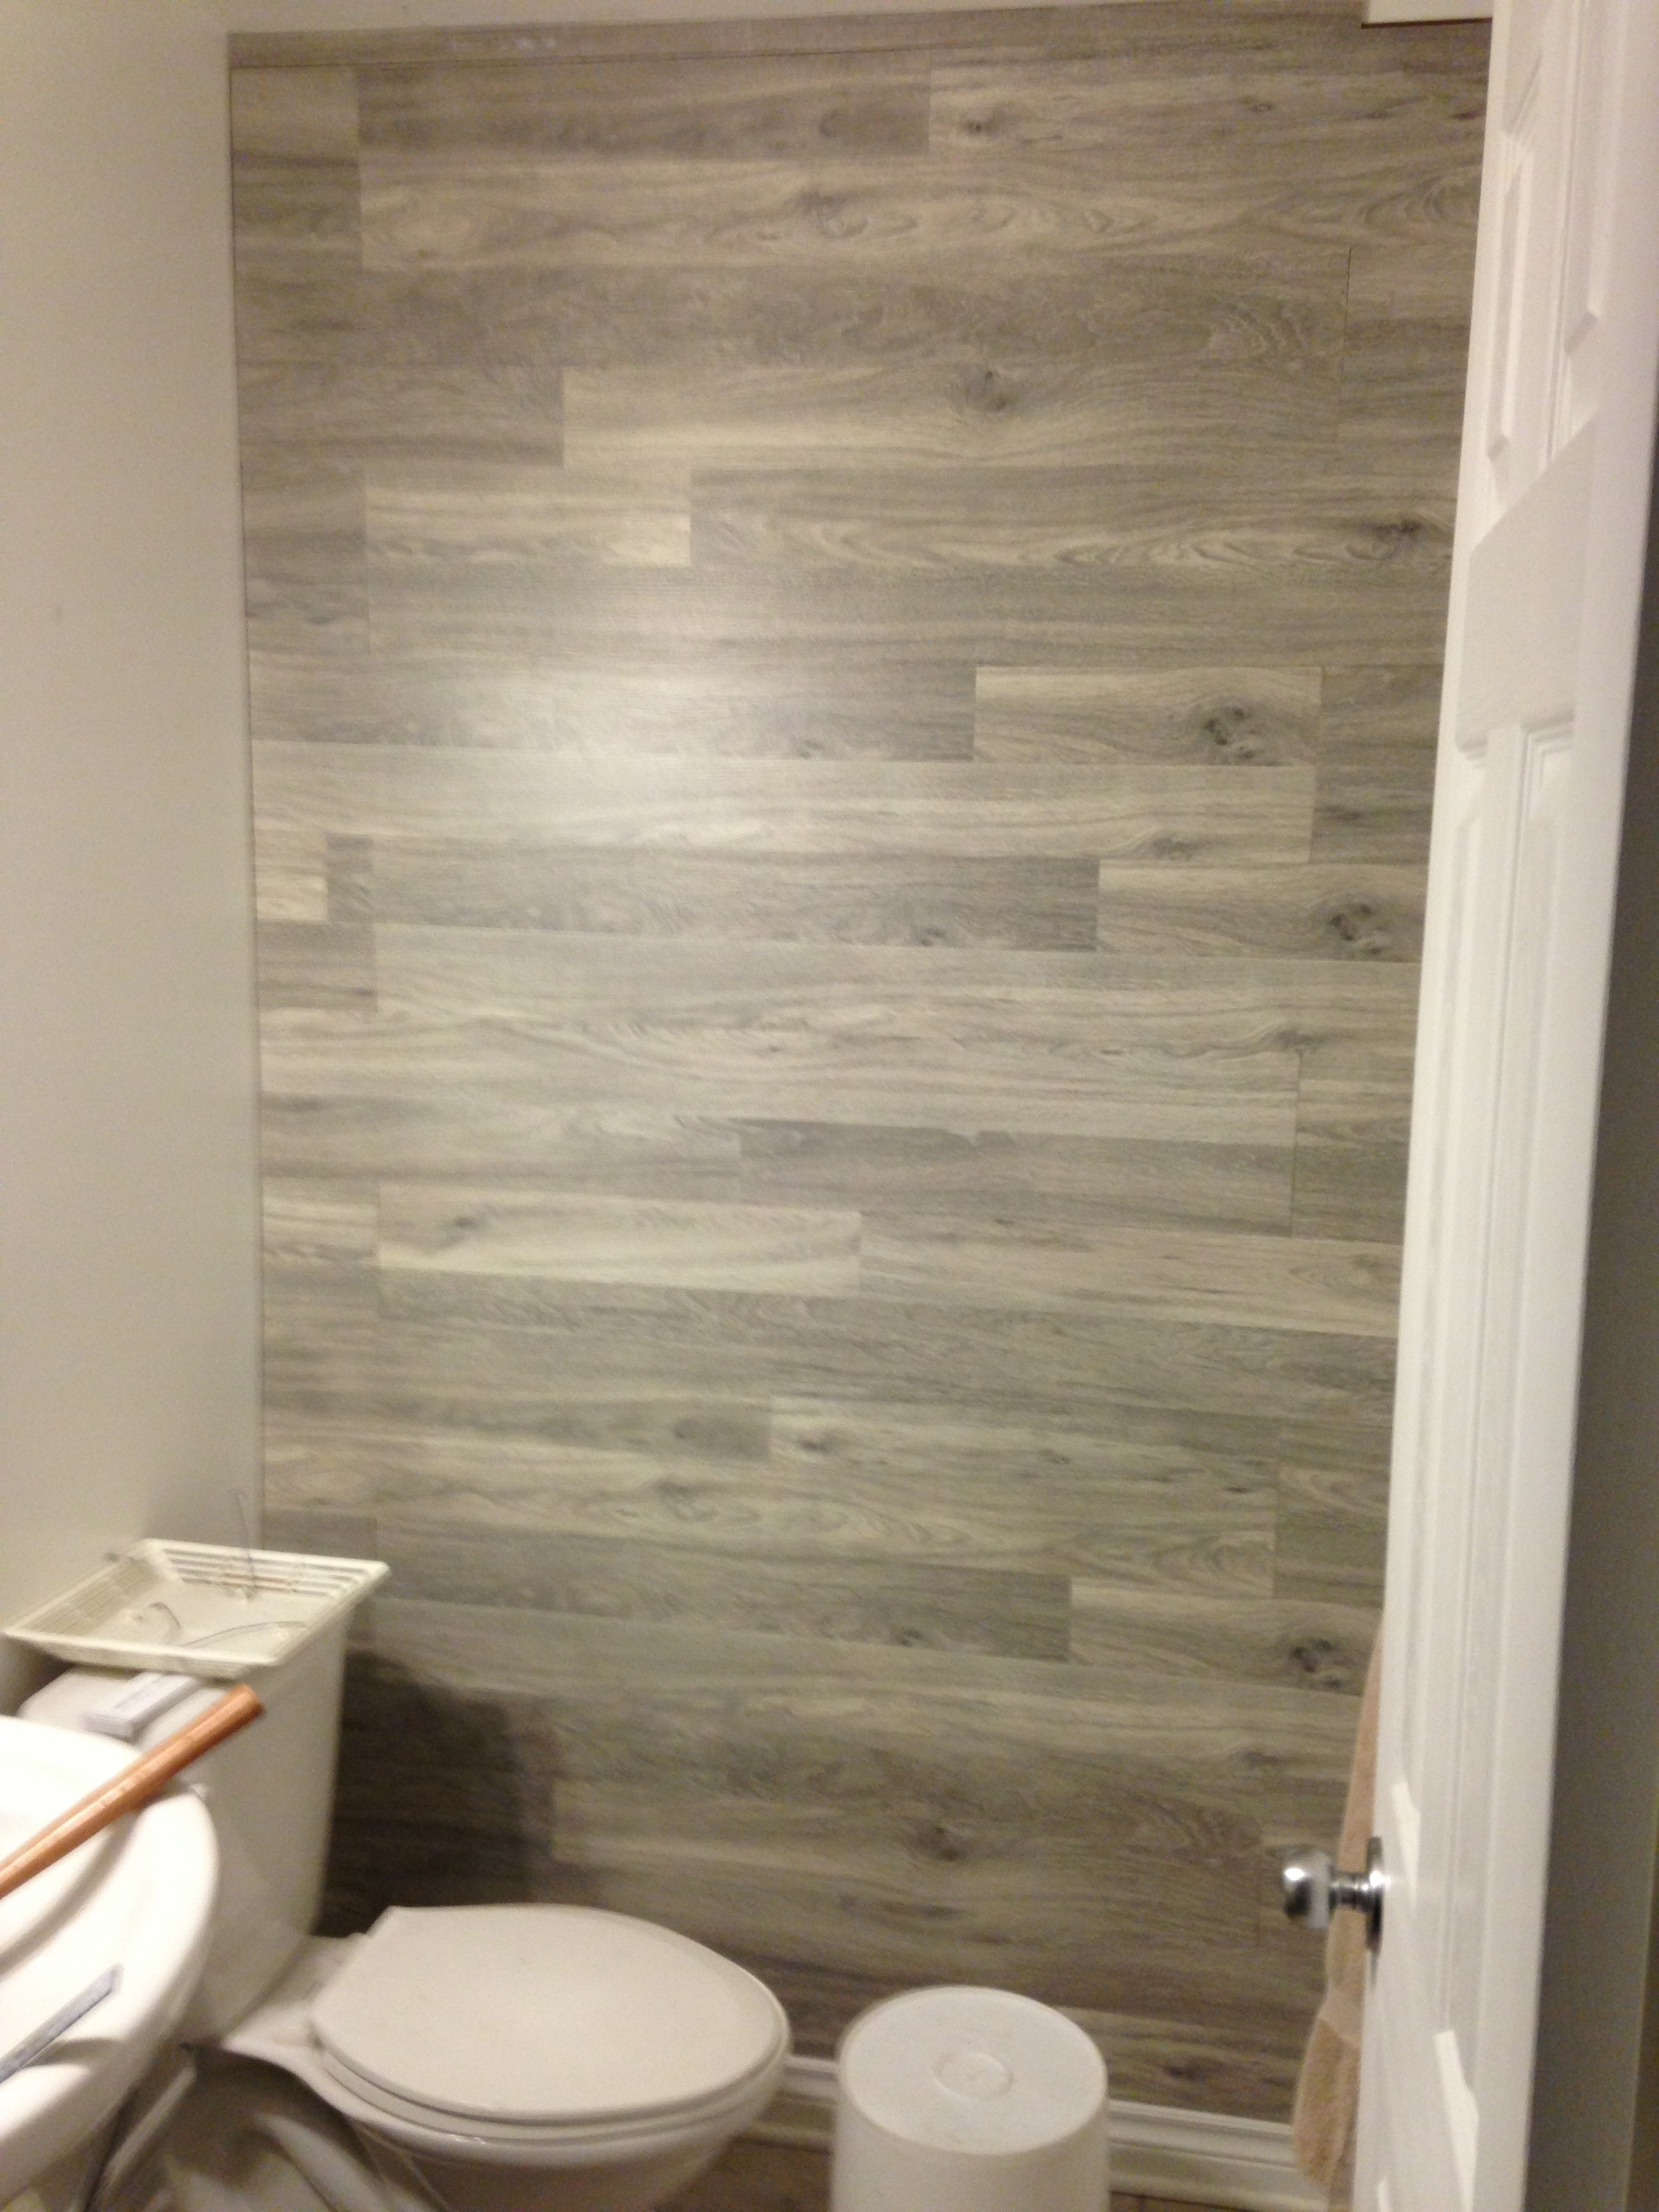 Laminate Flooring On Accent Wall inside Recent Wall Accents With Laminate Flooring